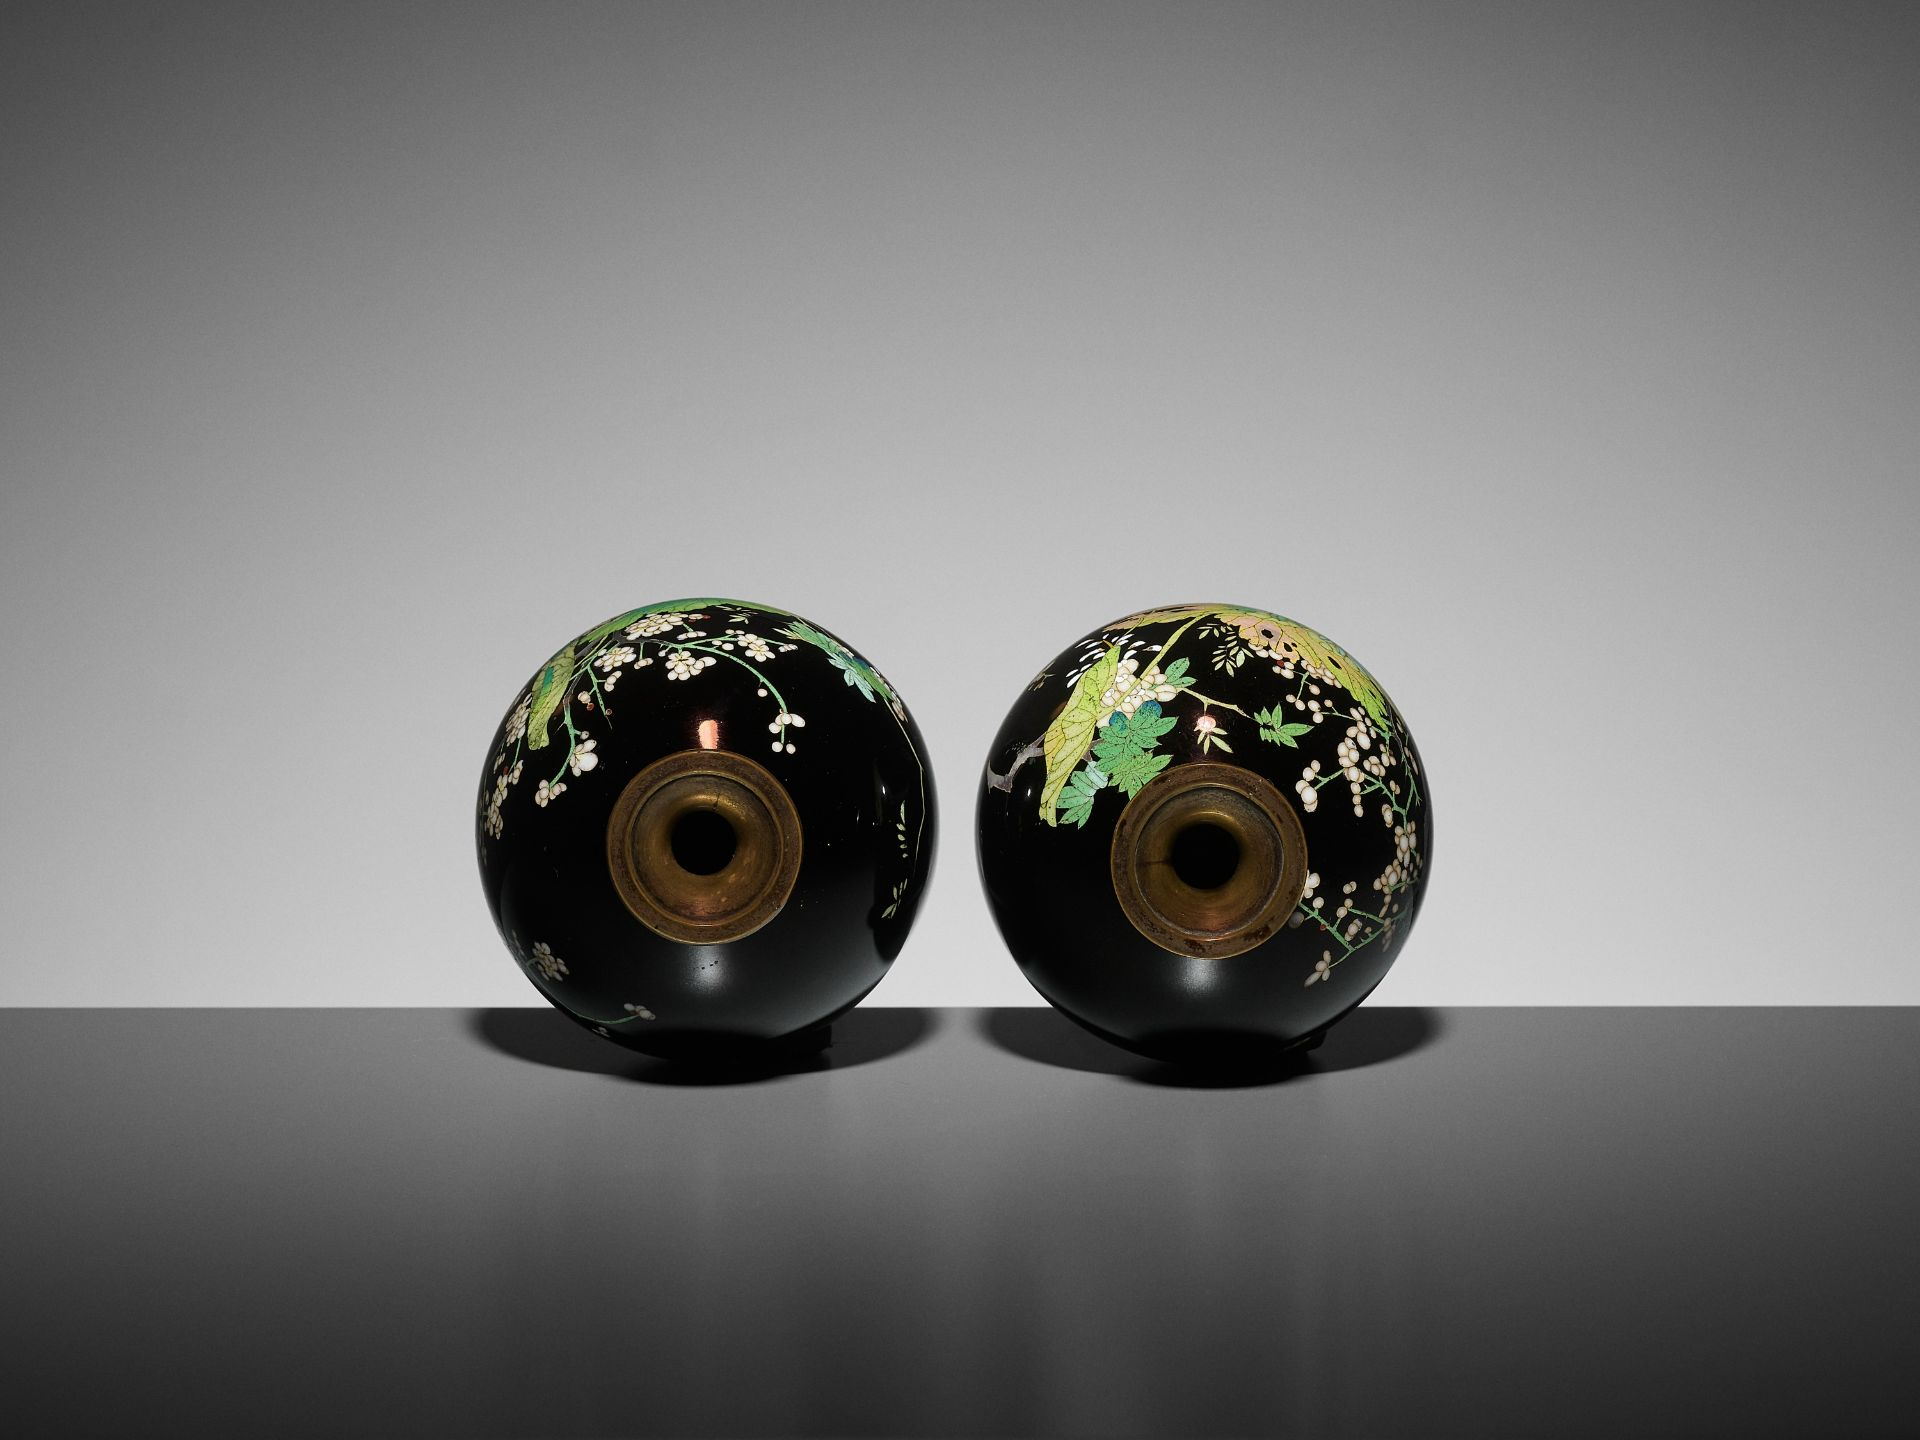 A PAIR OF SMALL CLOISONNE VASES - Image 6 of 7